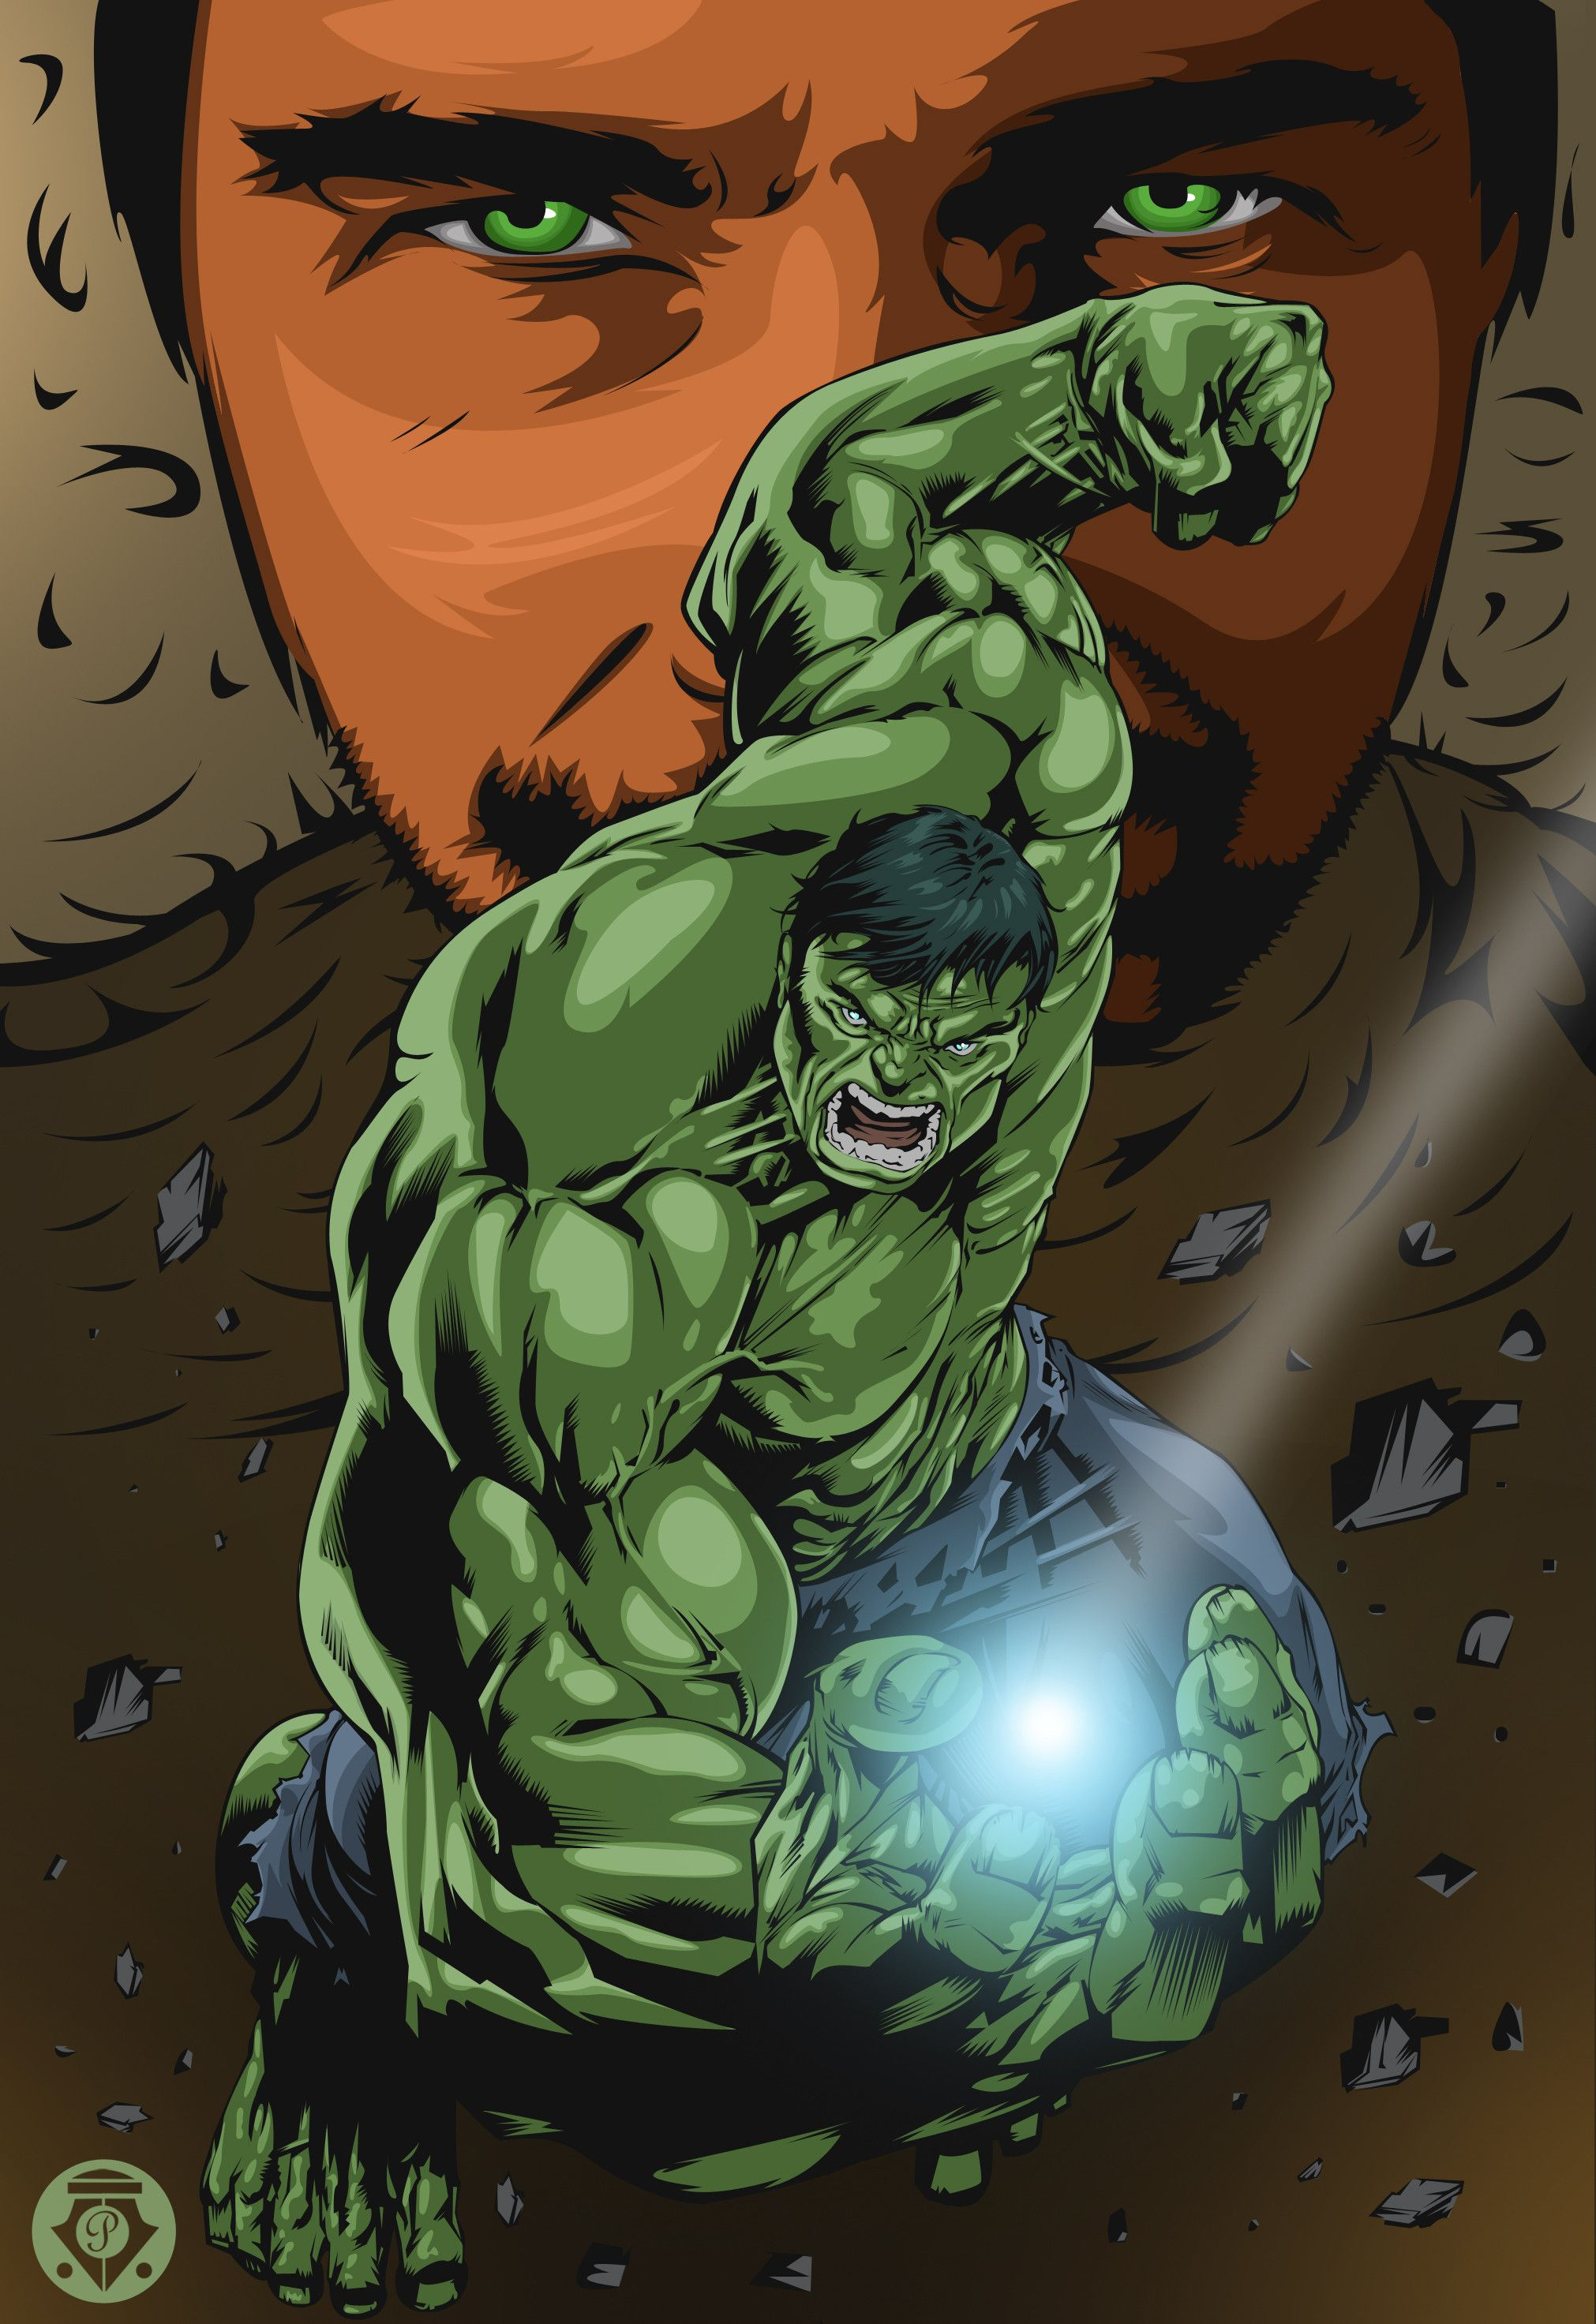 #Hulk #Fan #Art. (The Hulk) By: Pipingskie & Shadowness. (THE * 5 * STÅR * ÅWARD * OF: * AW YEAH, IT'S MAJOR ÅWESOMENESS!!!™)[THANK Ü 4 PINNING!!!<·><]<©>ÅÅÅ+(OB4E)